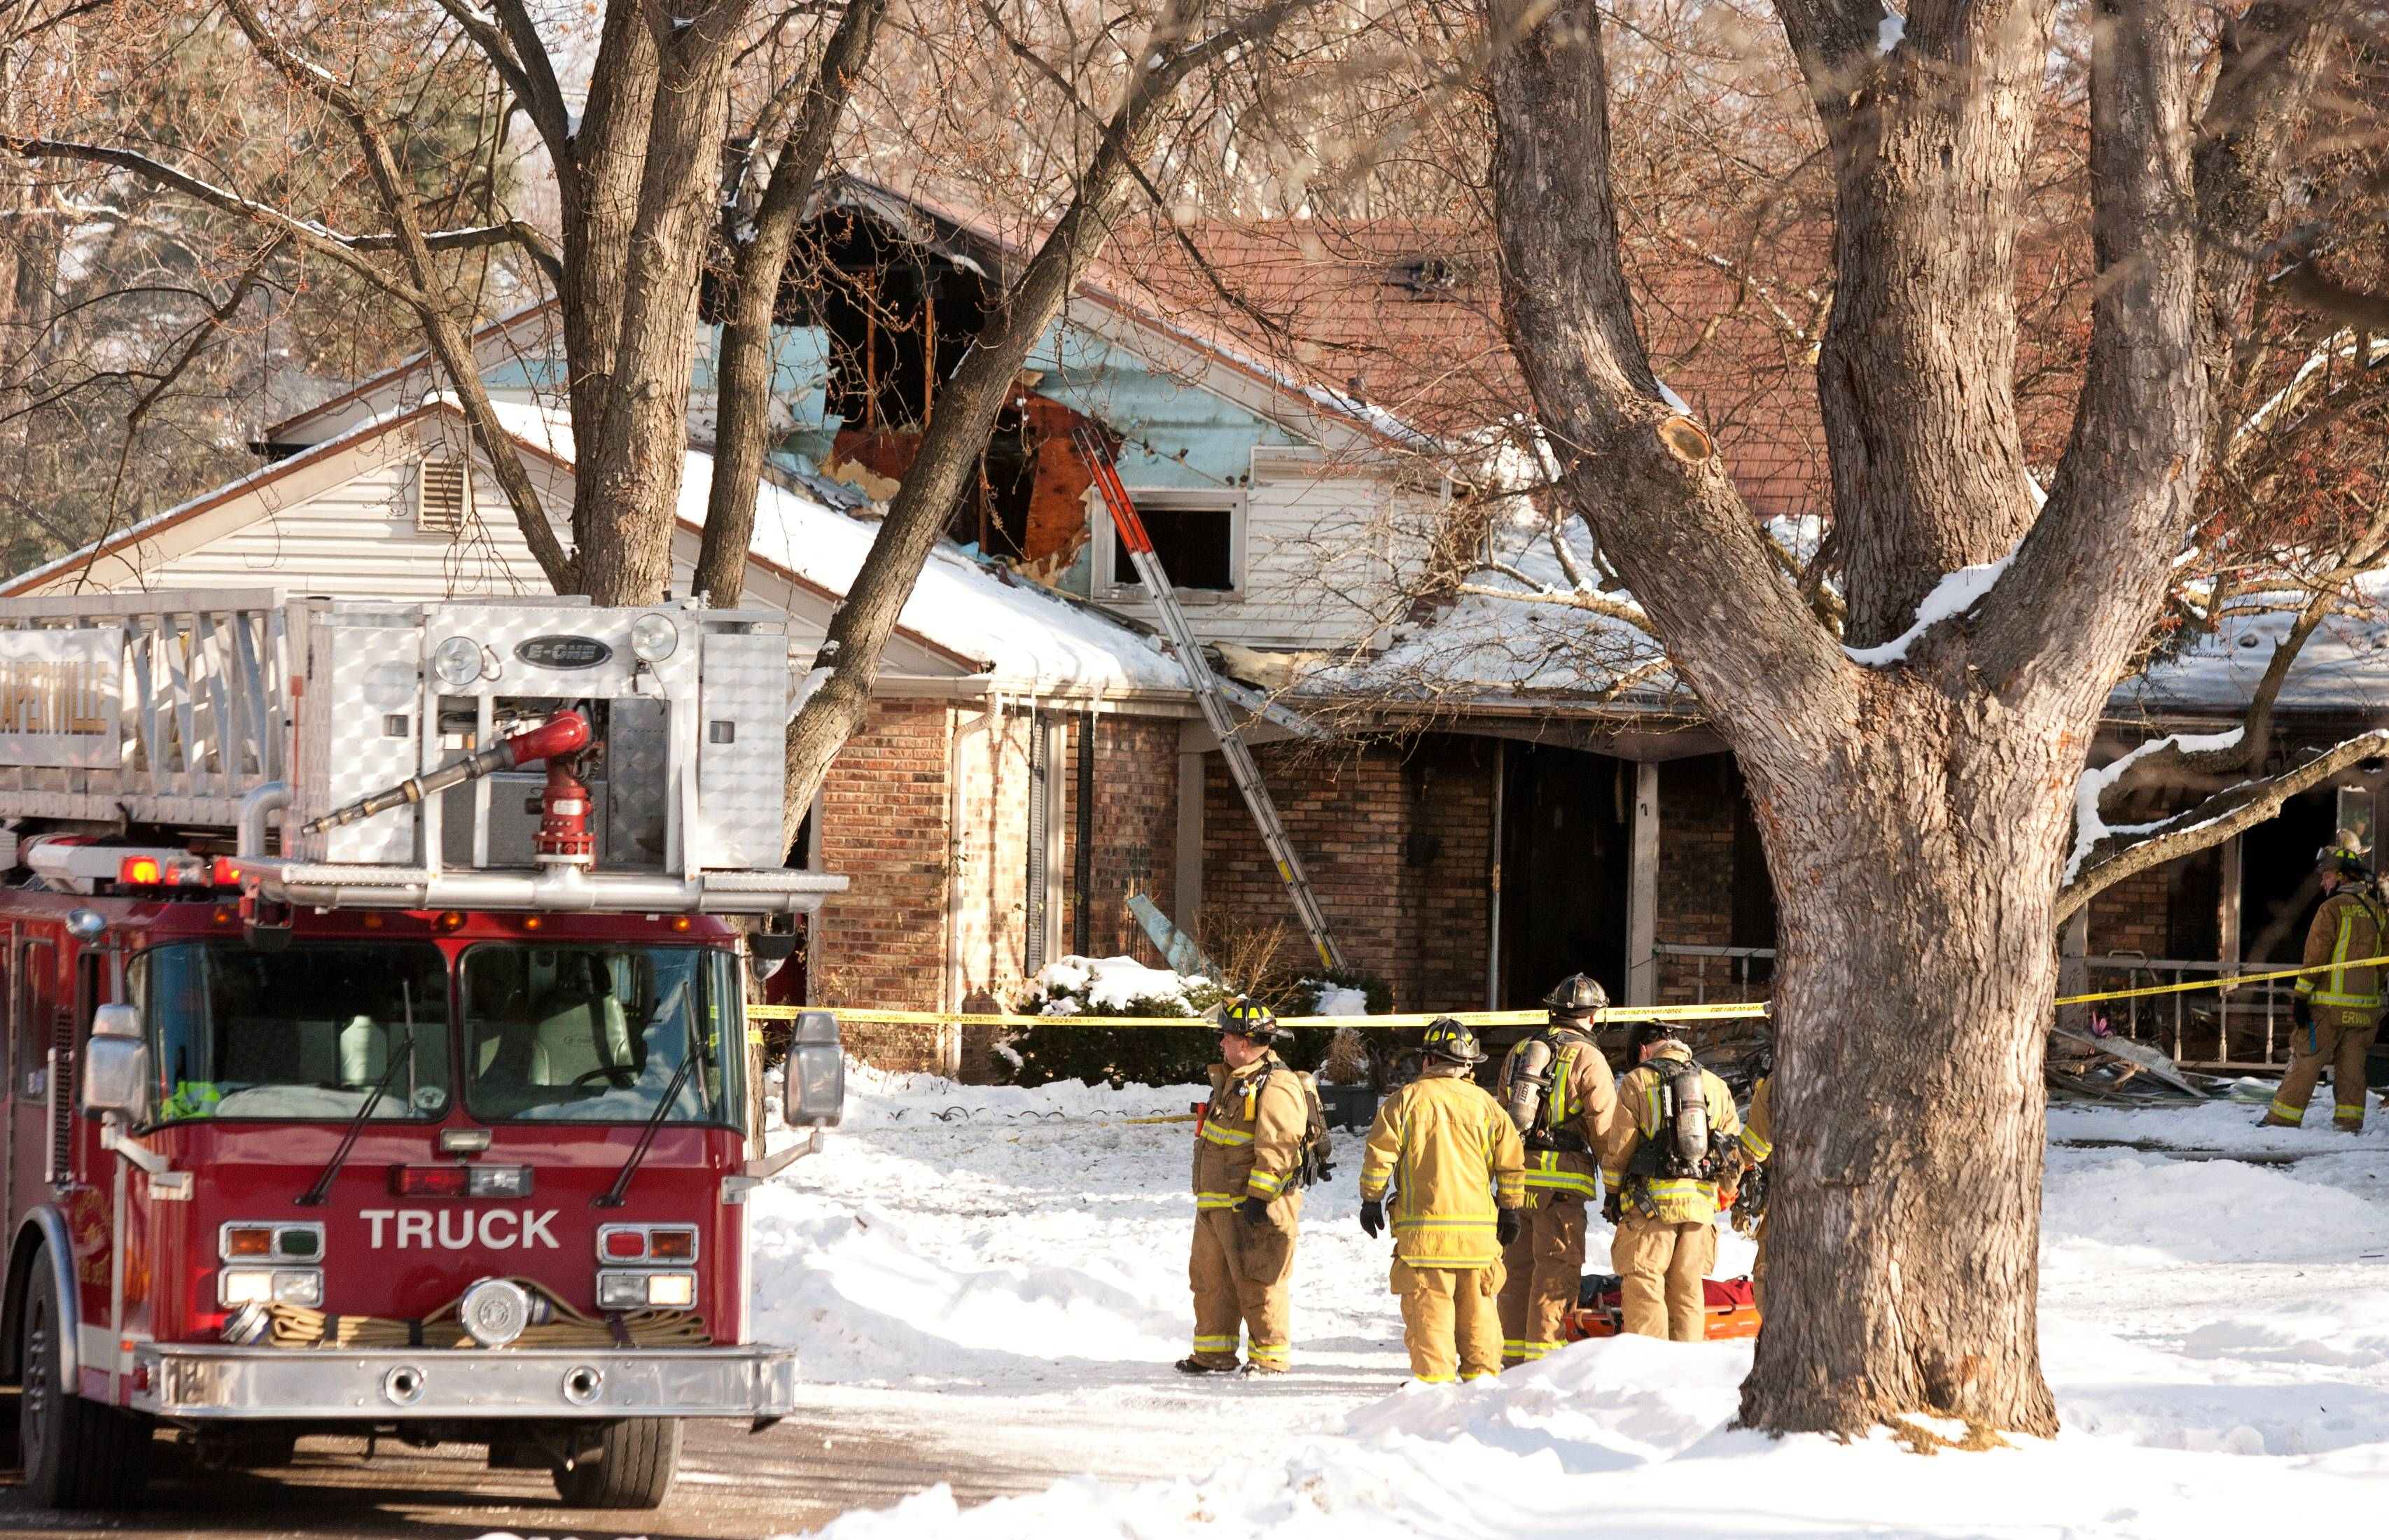 A 21-year-old Orland Park man who was working as a live-in caregiver in this Naperville home when it caught fire Dec. 18 died Sunday. Allen Belaguas is the third person to die after the blaze, which also killed homeowners Tom and Jan Lambert of Naperville.